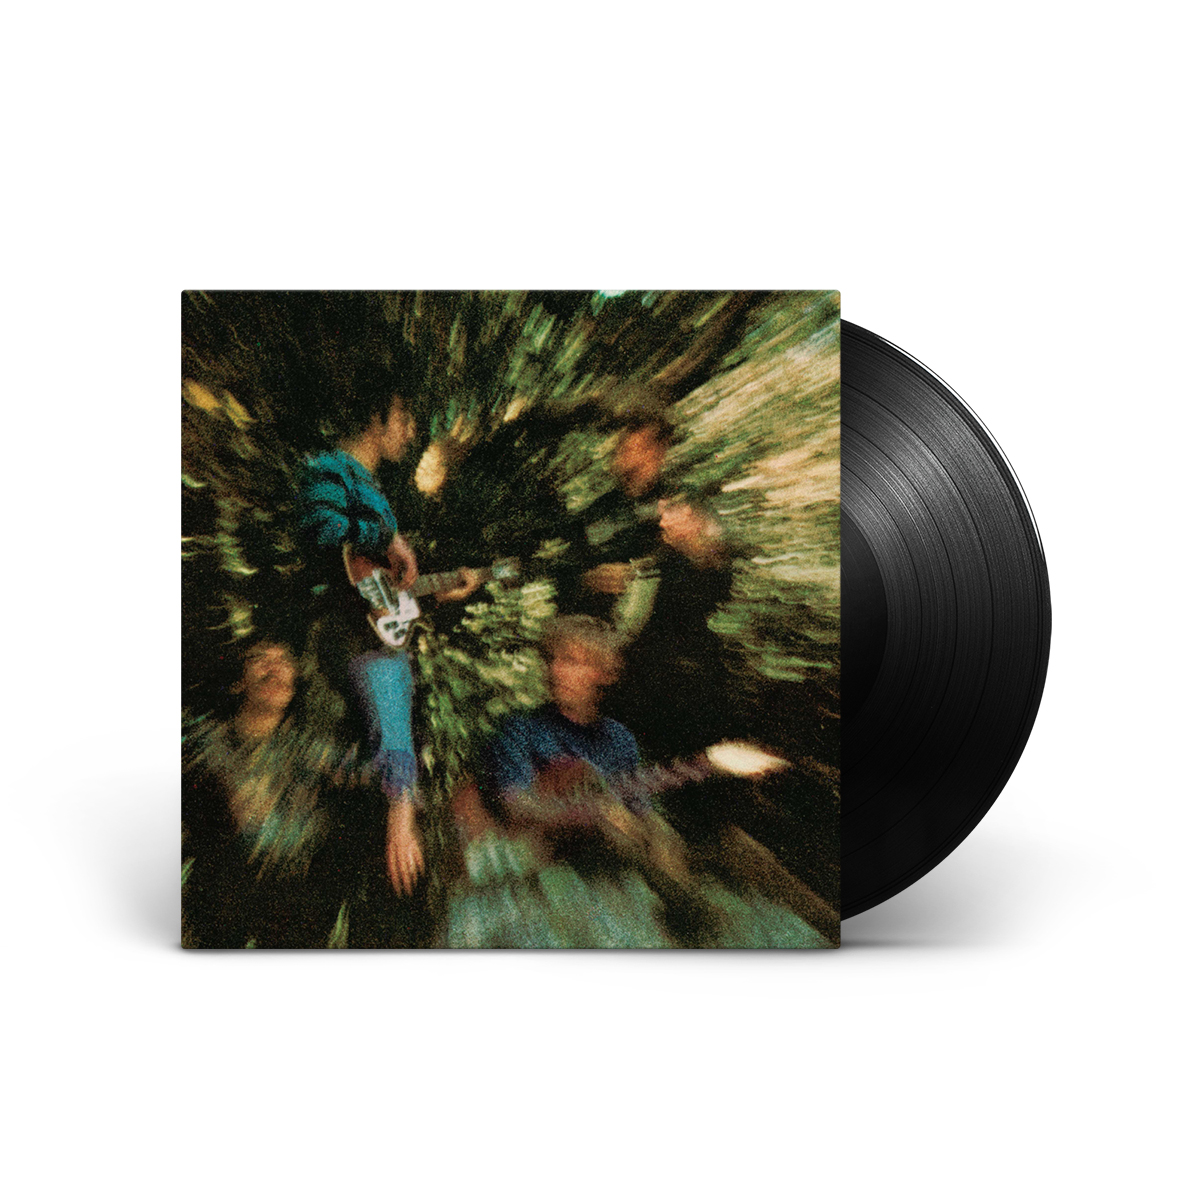 Creedence Clearwater Revival - Bayou Country  Vinyl LP